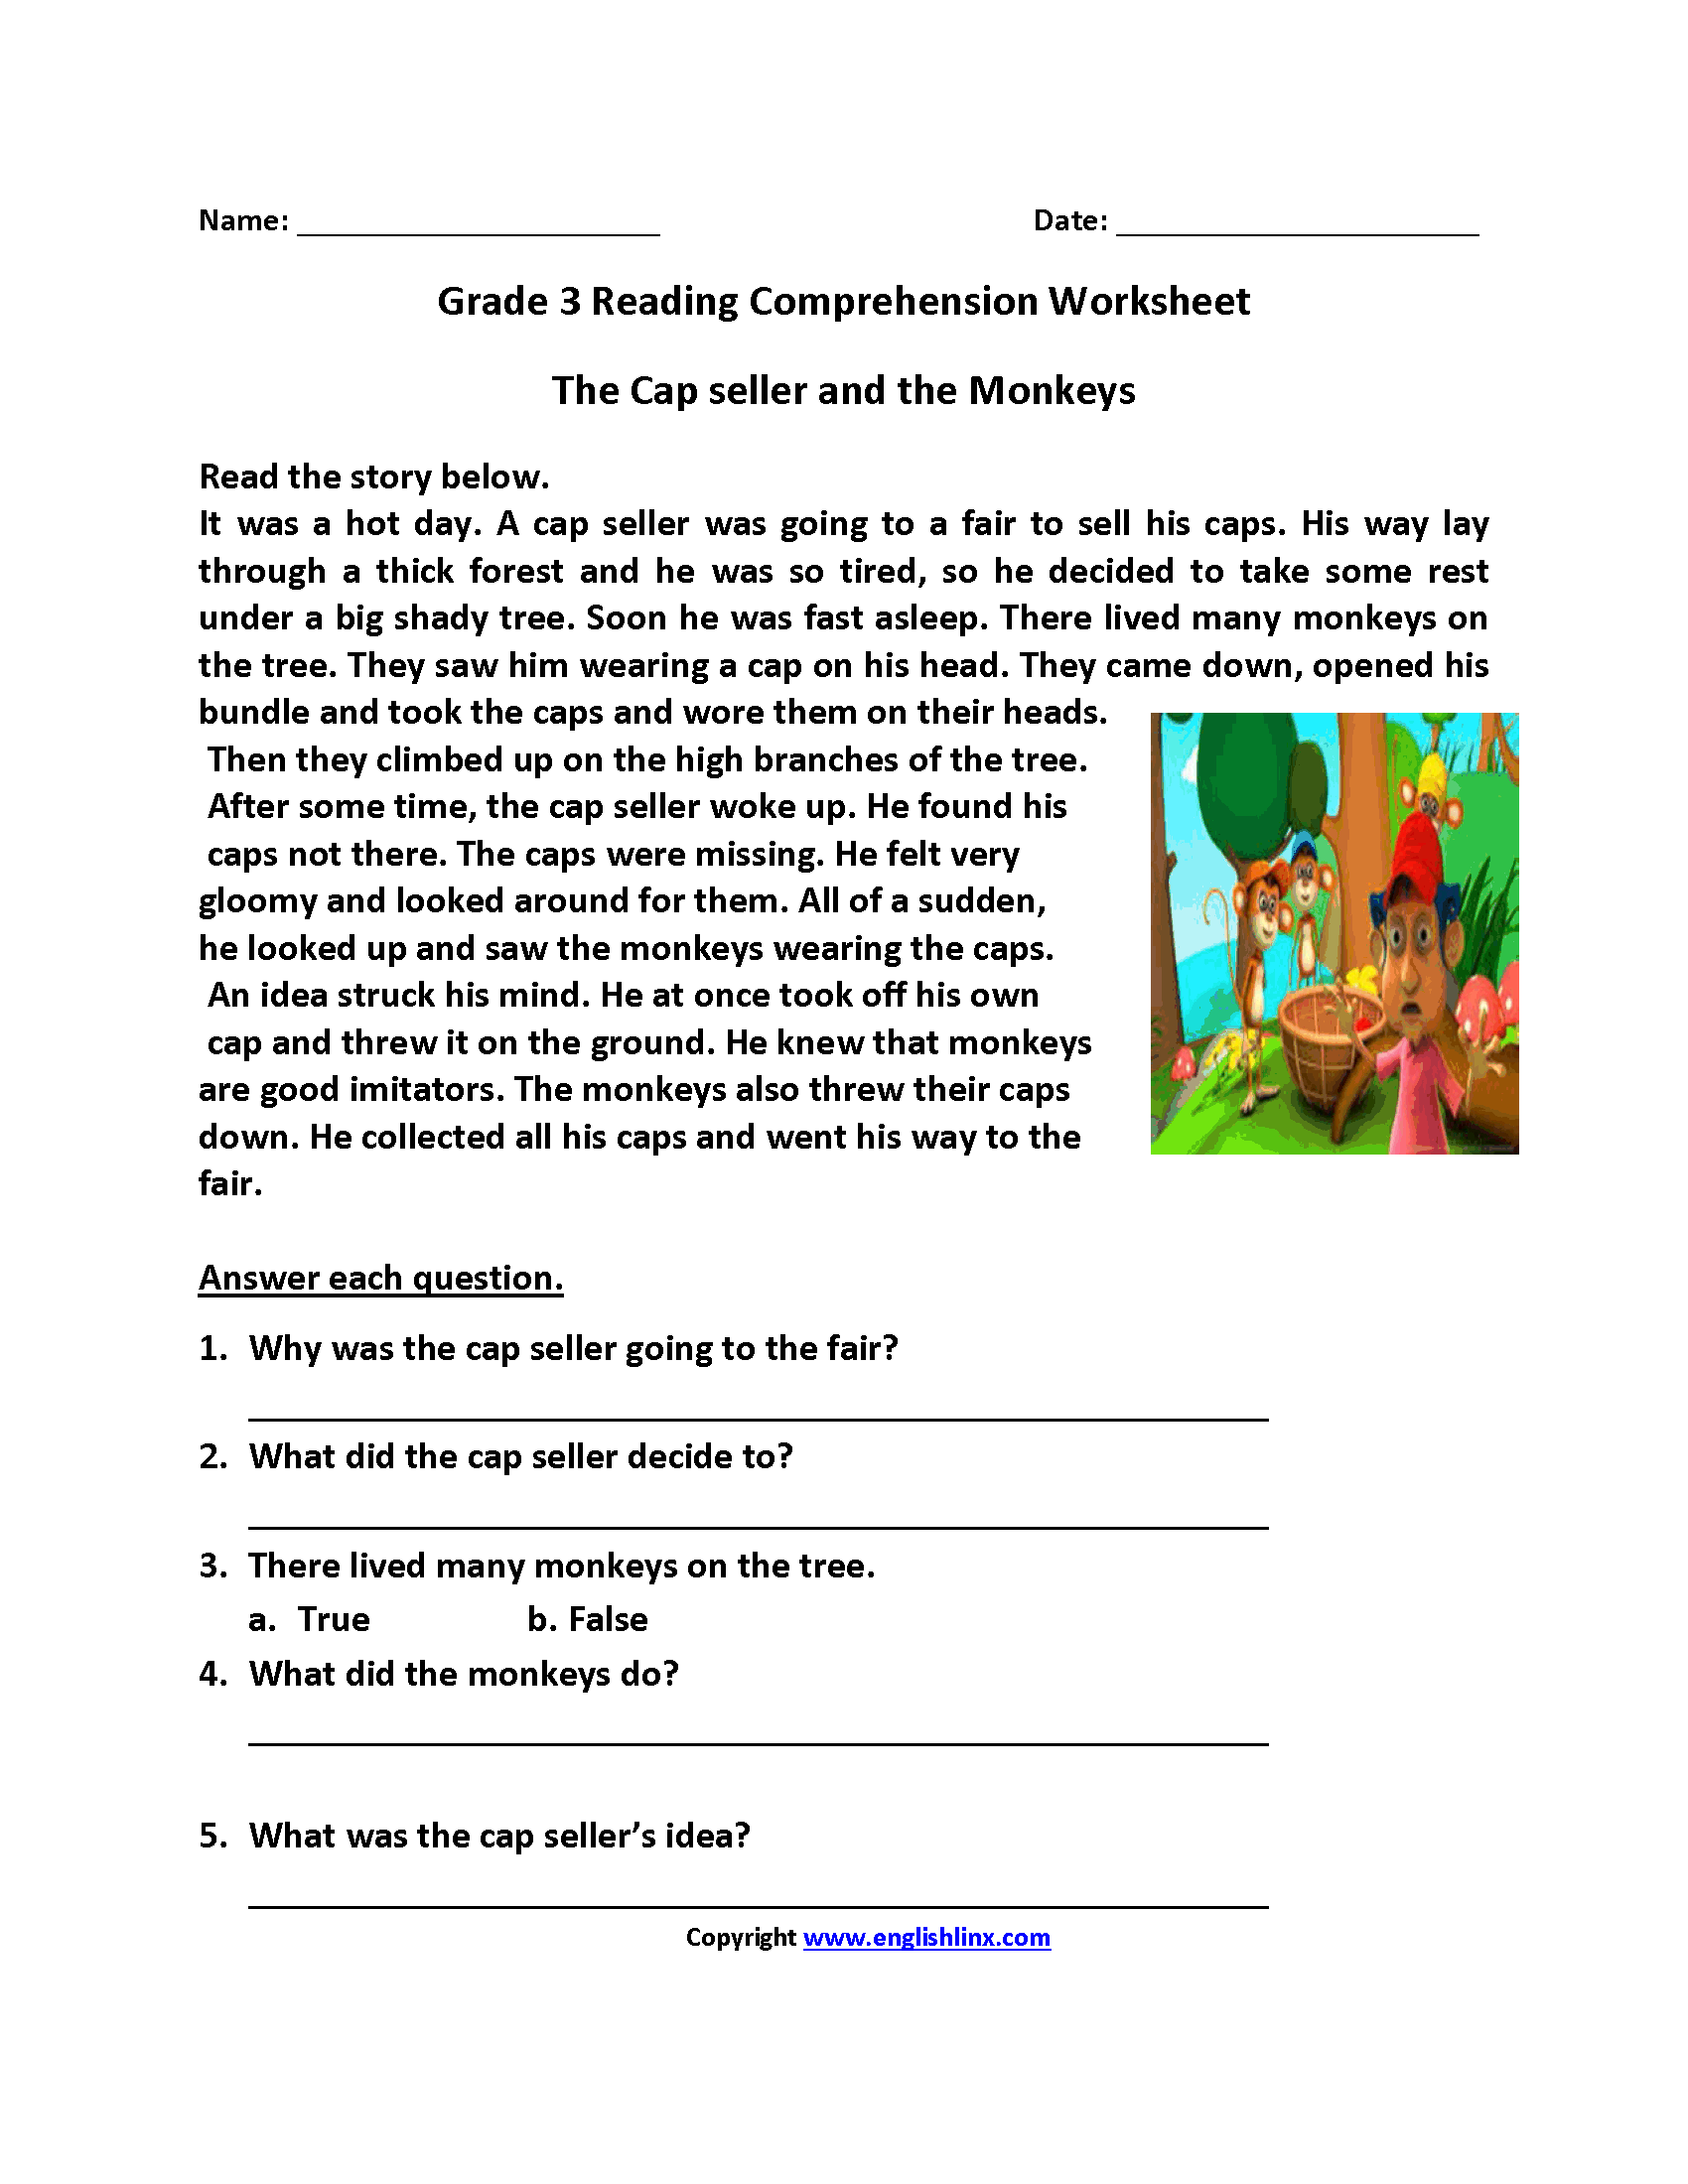 Free english comprehension worksheets for grade 4